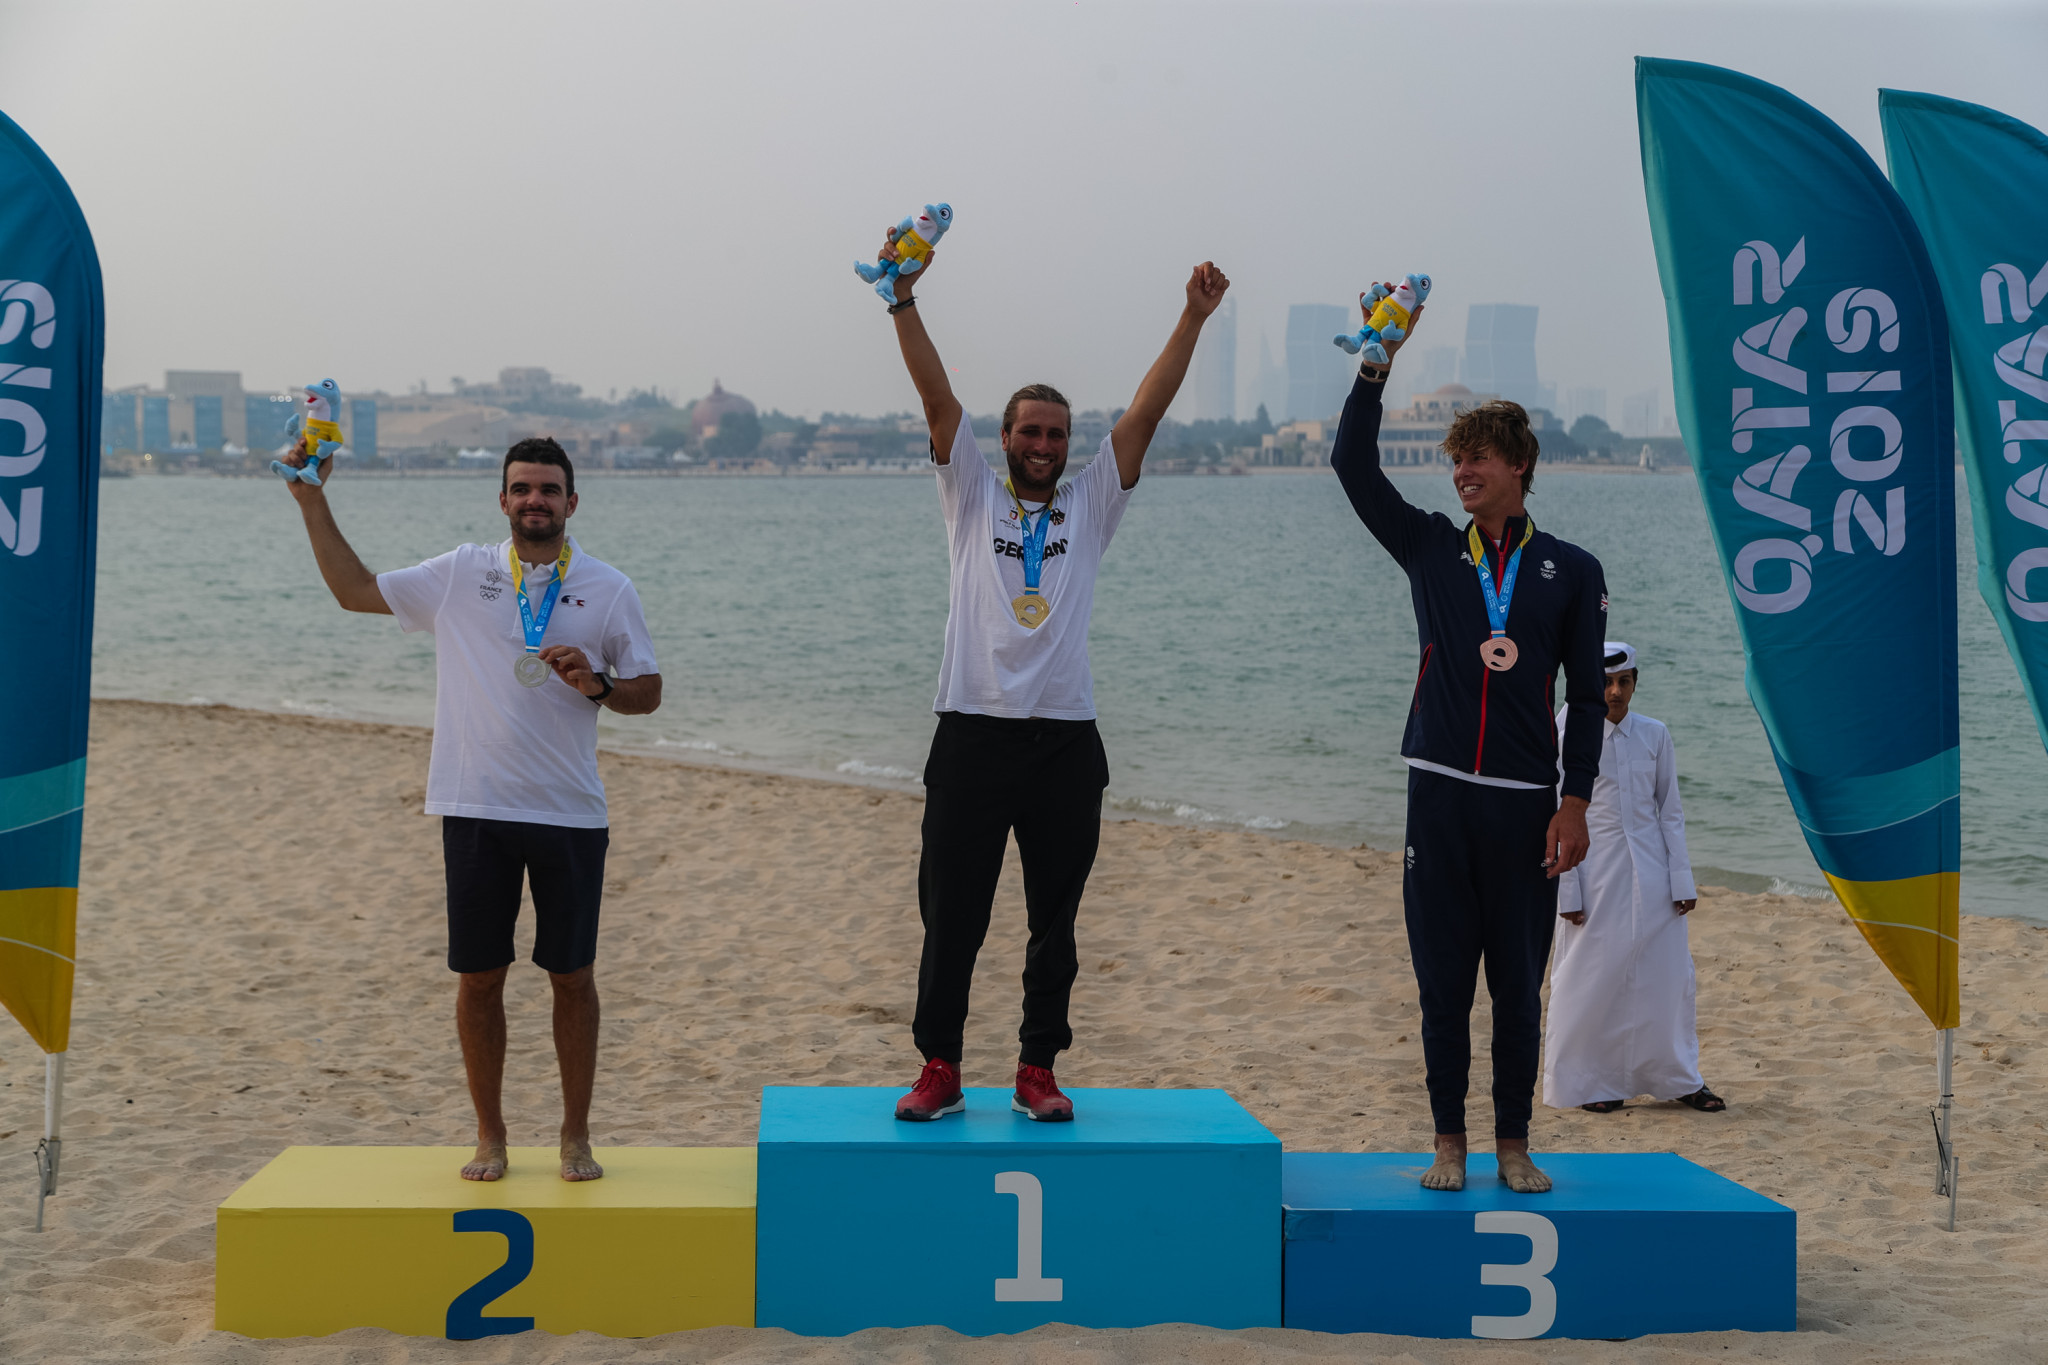 Florian Gruber of Germany won the first medal of the final day in the men's kitefoil ©ANOC